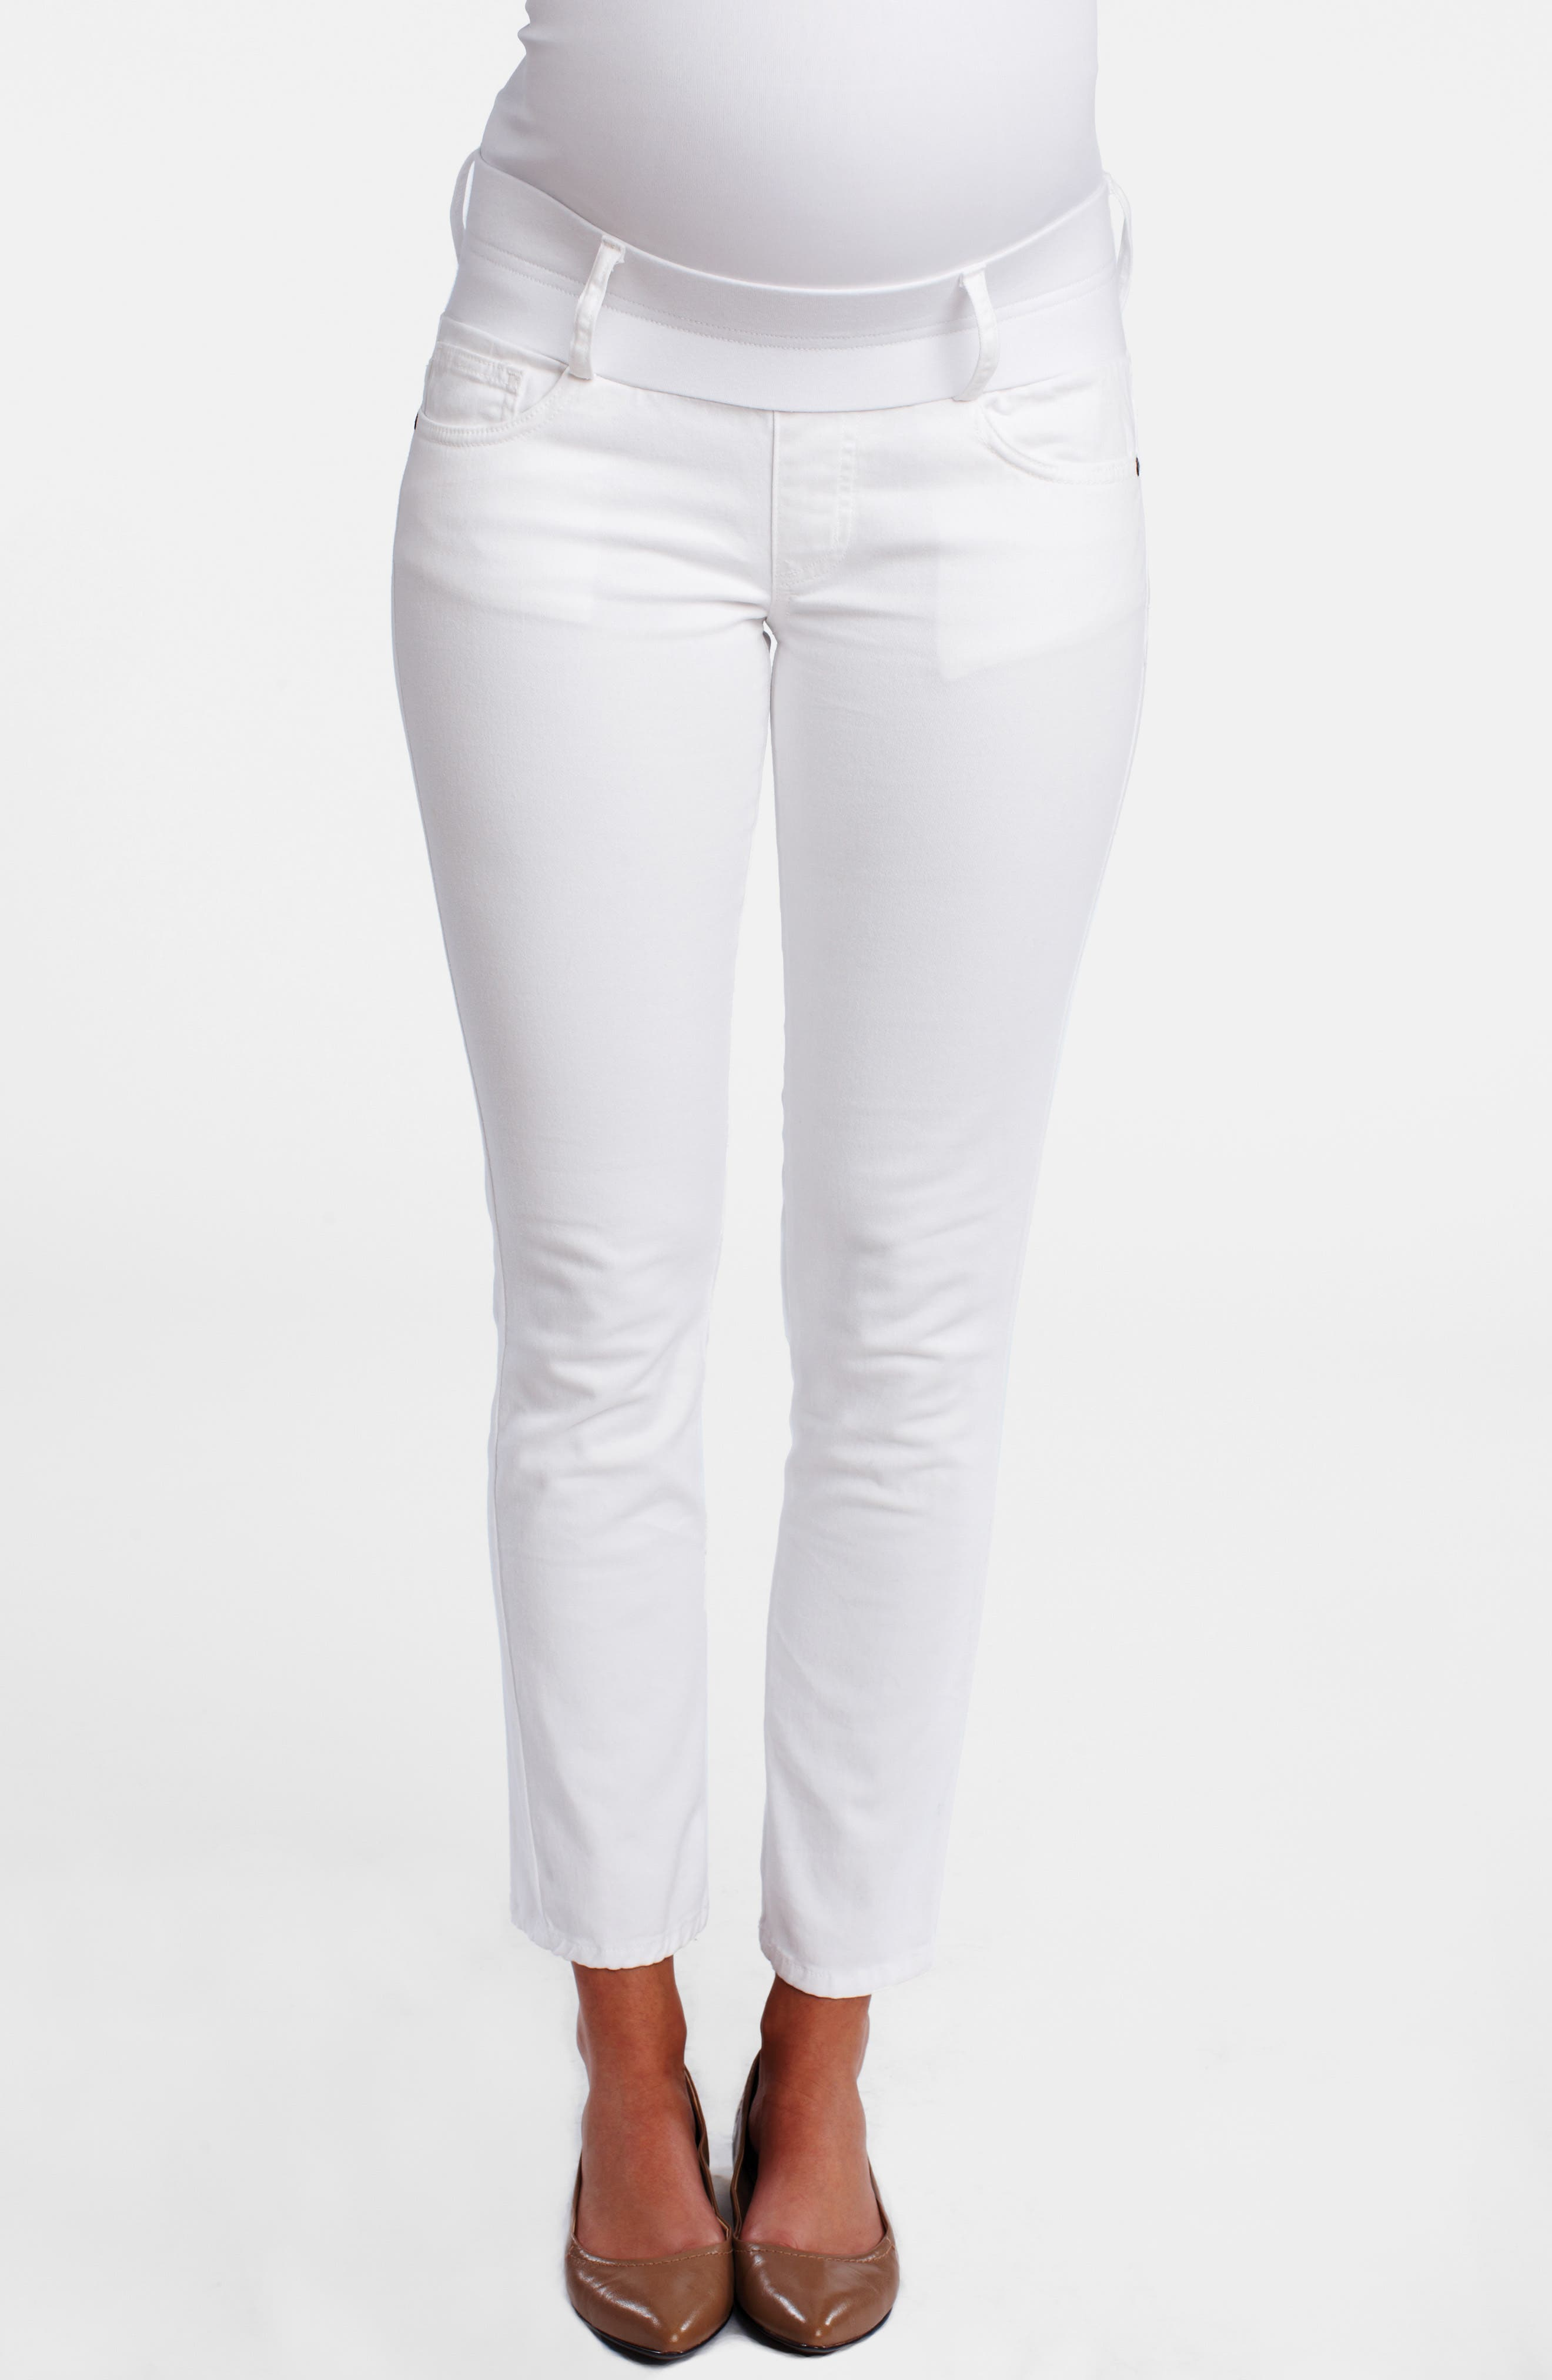 MATERNAL AMERICA, Maternity Skinny Ankle Stretch Jeans, Main thumbnail 1, color, 100